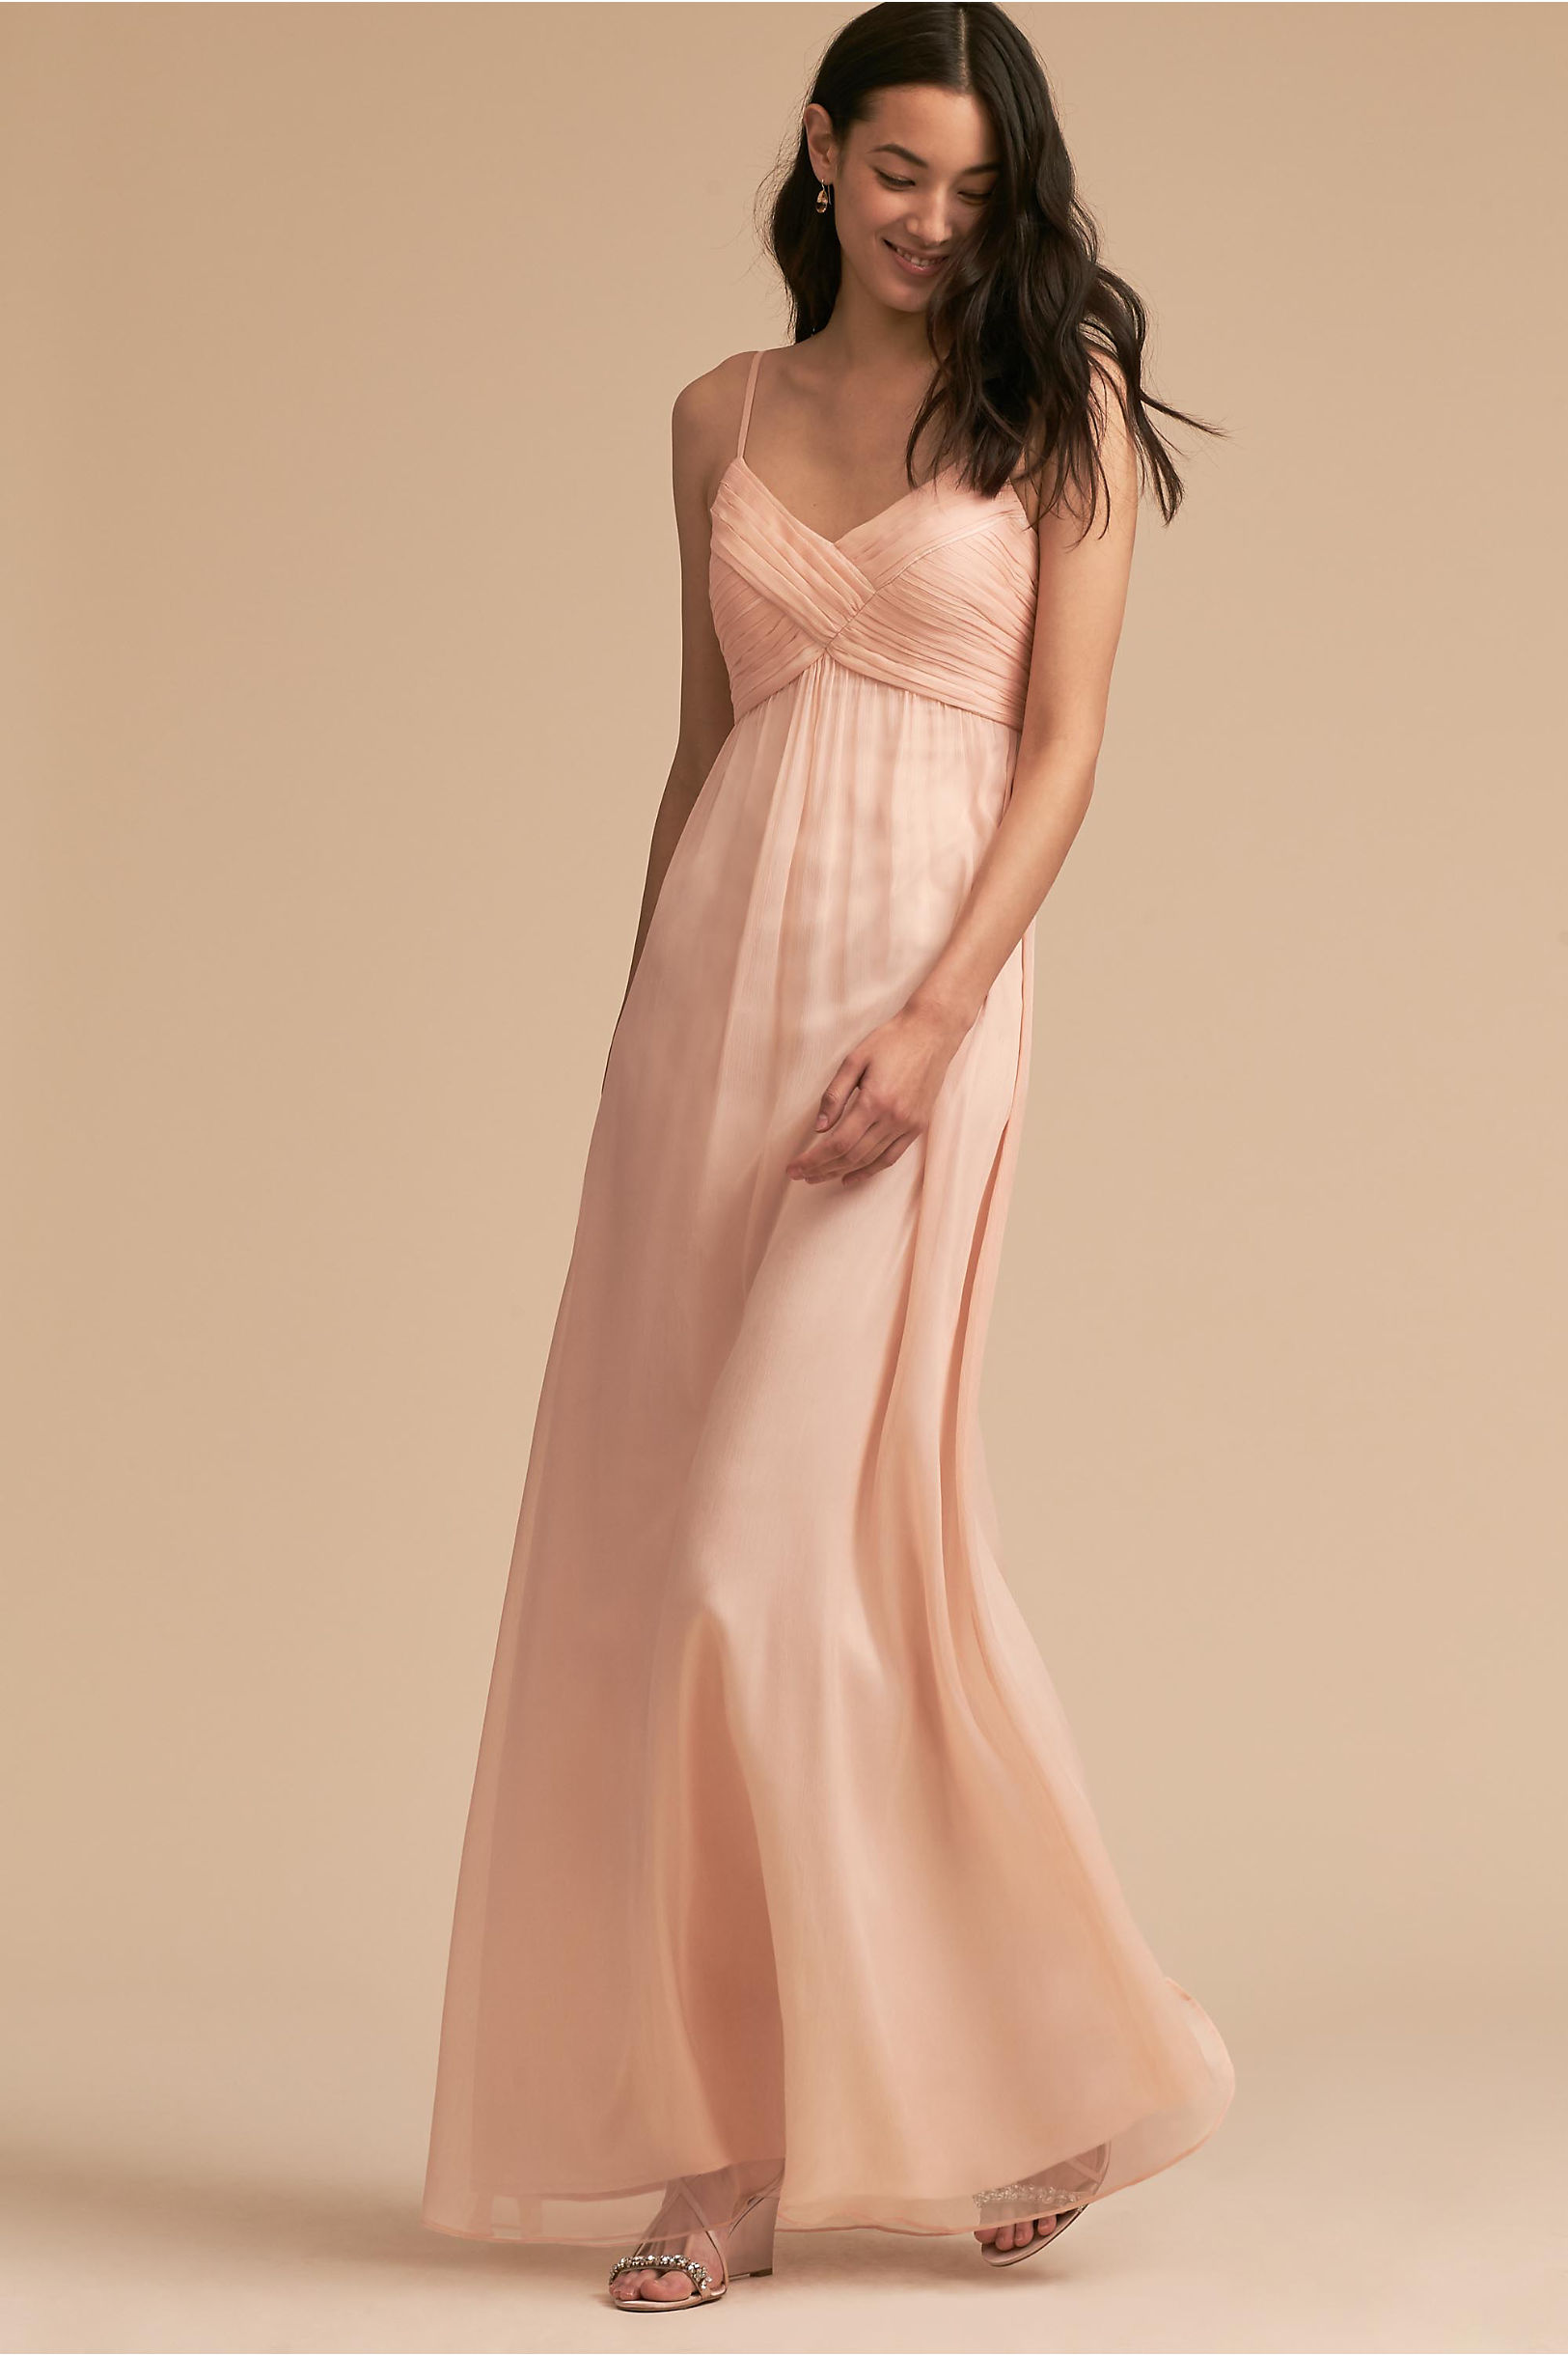 Blush colored light pink bridesmaid dresses bhldn brigitte dress ombrellifo Images